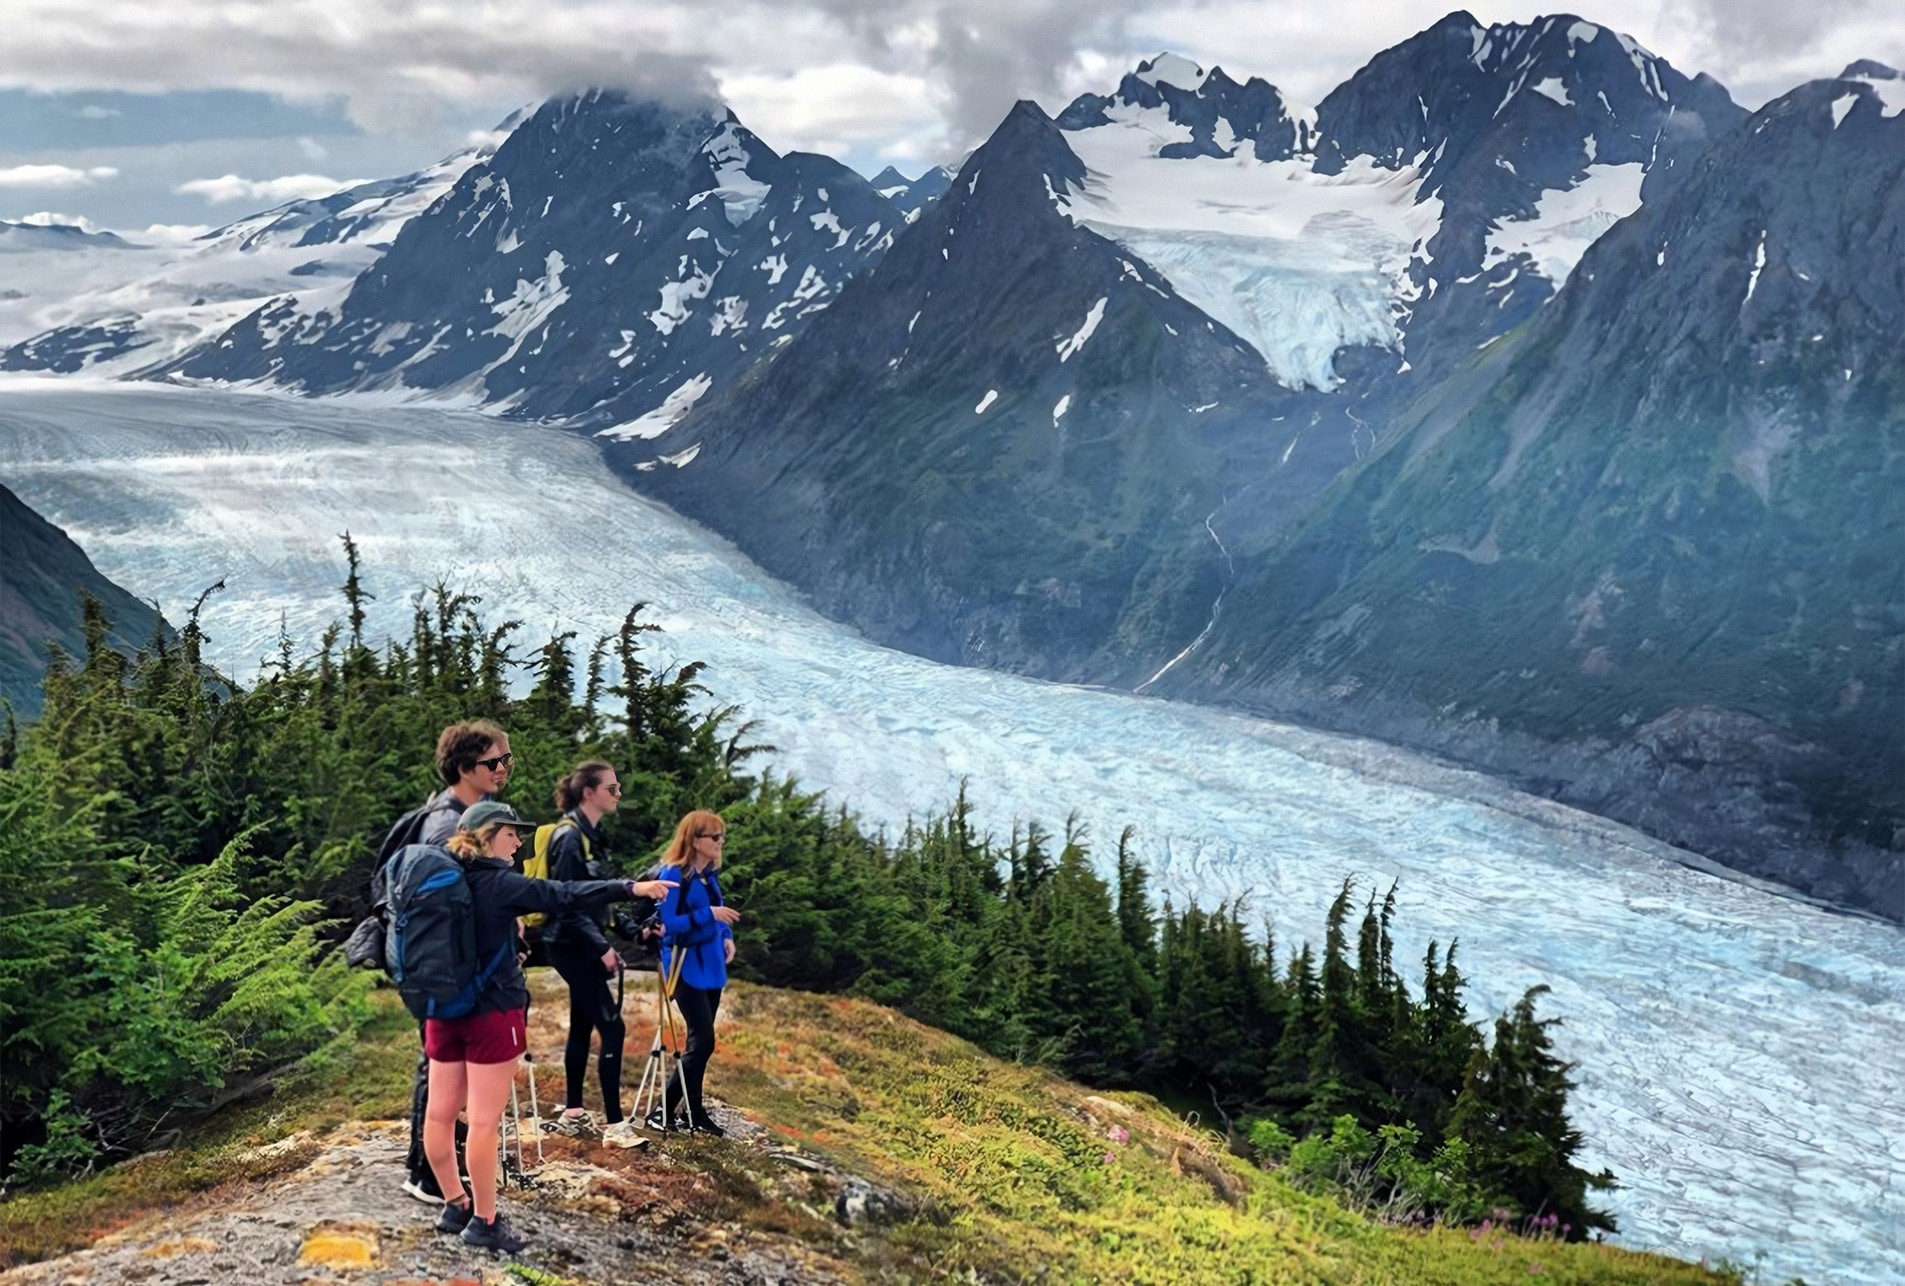 3 people viewing the Alaska outdoor scenery. They are in a grassy field overlooking water and snow peaked mountains.